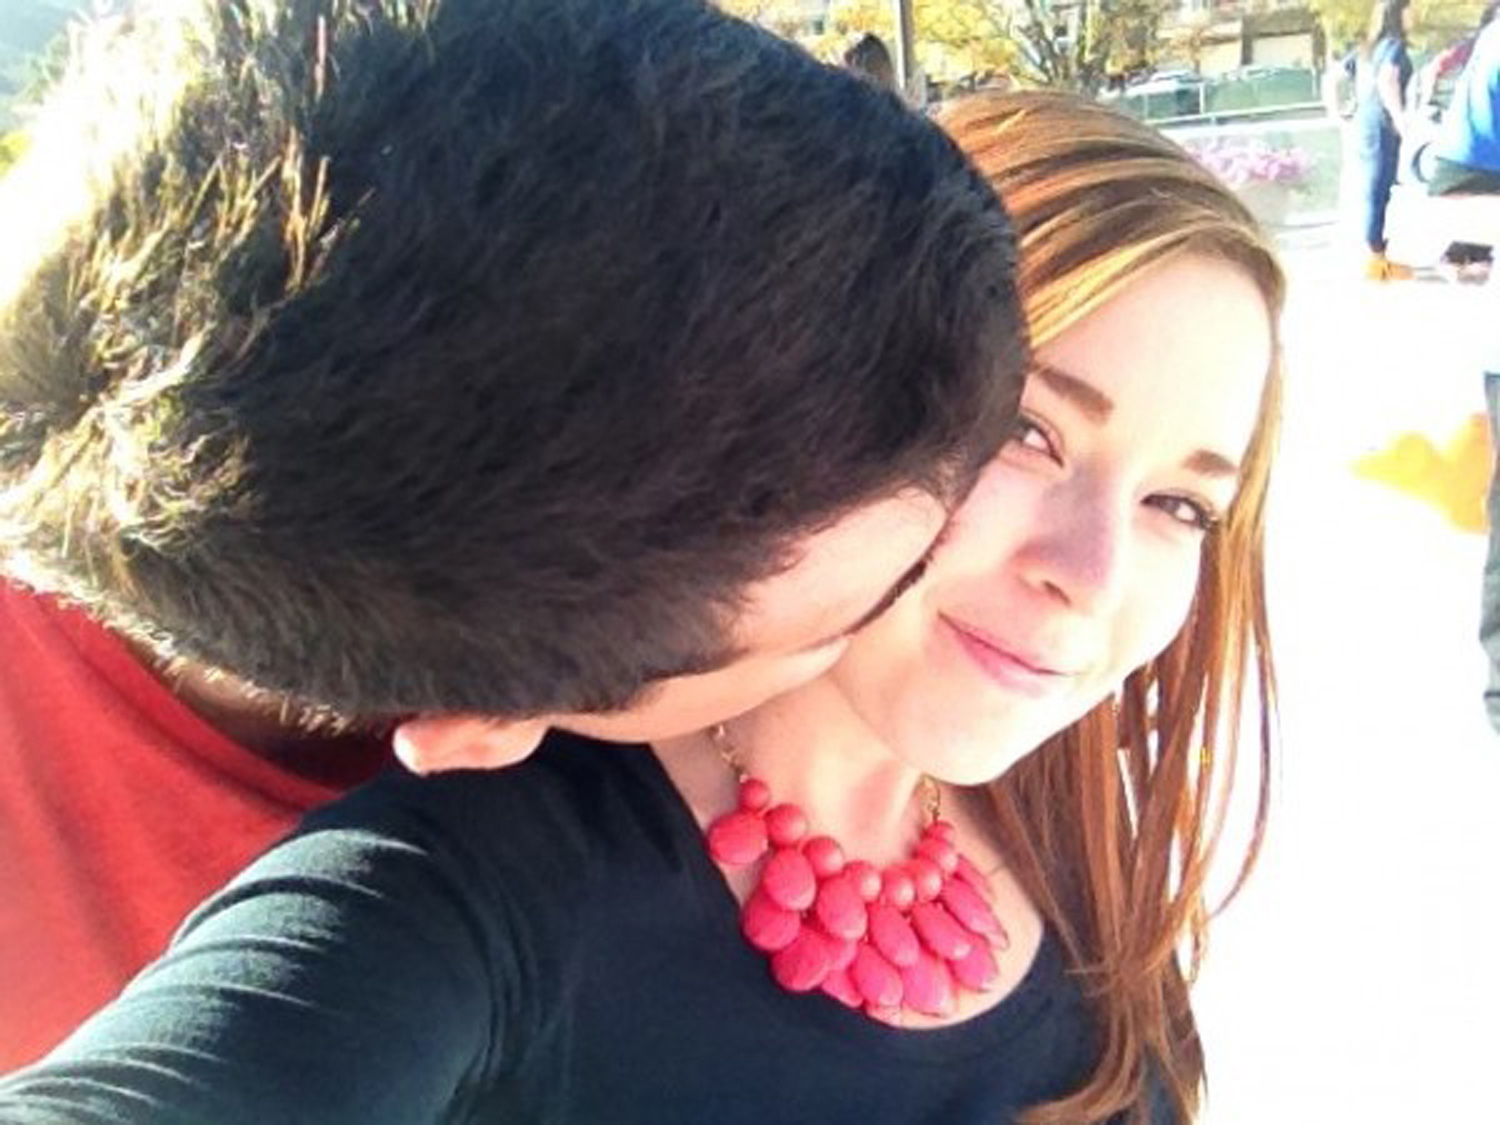 engagement-video-ideas_cute-marriage-proposal-ideas_37